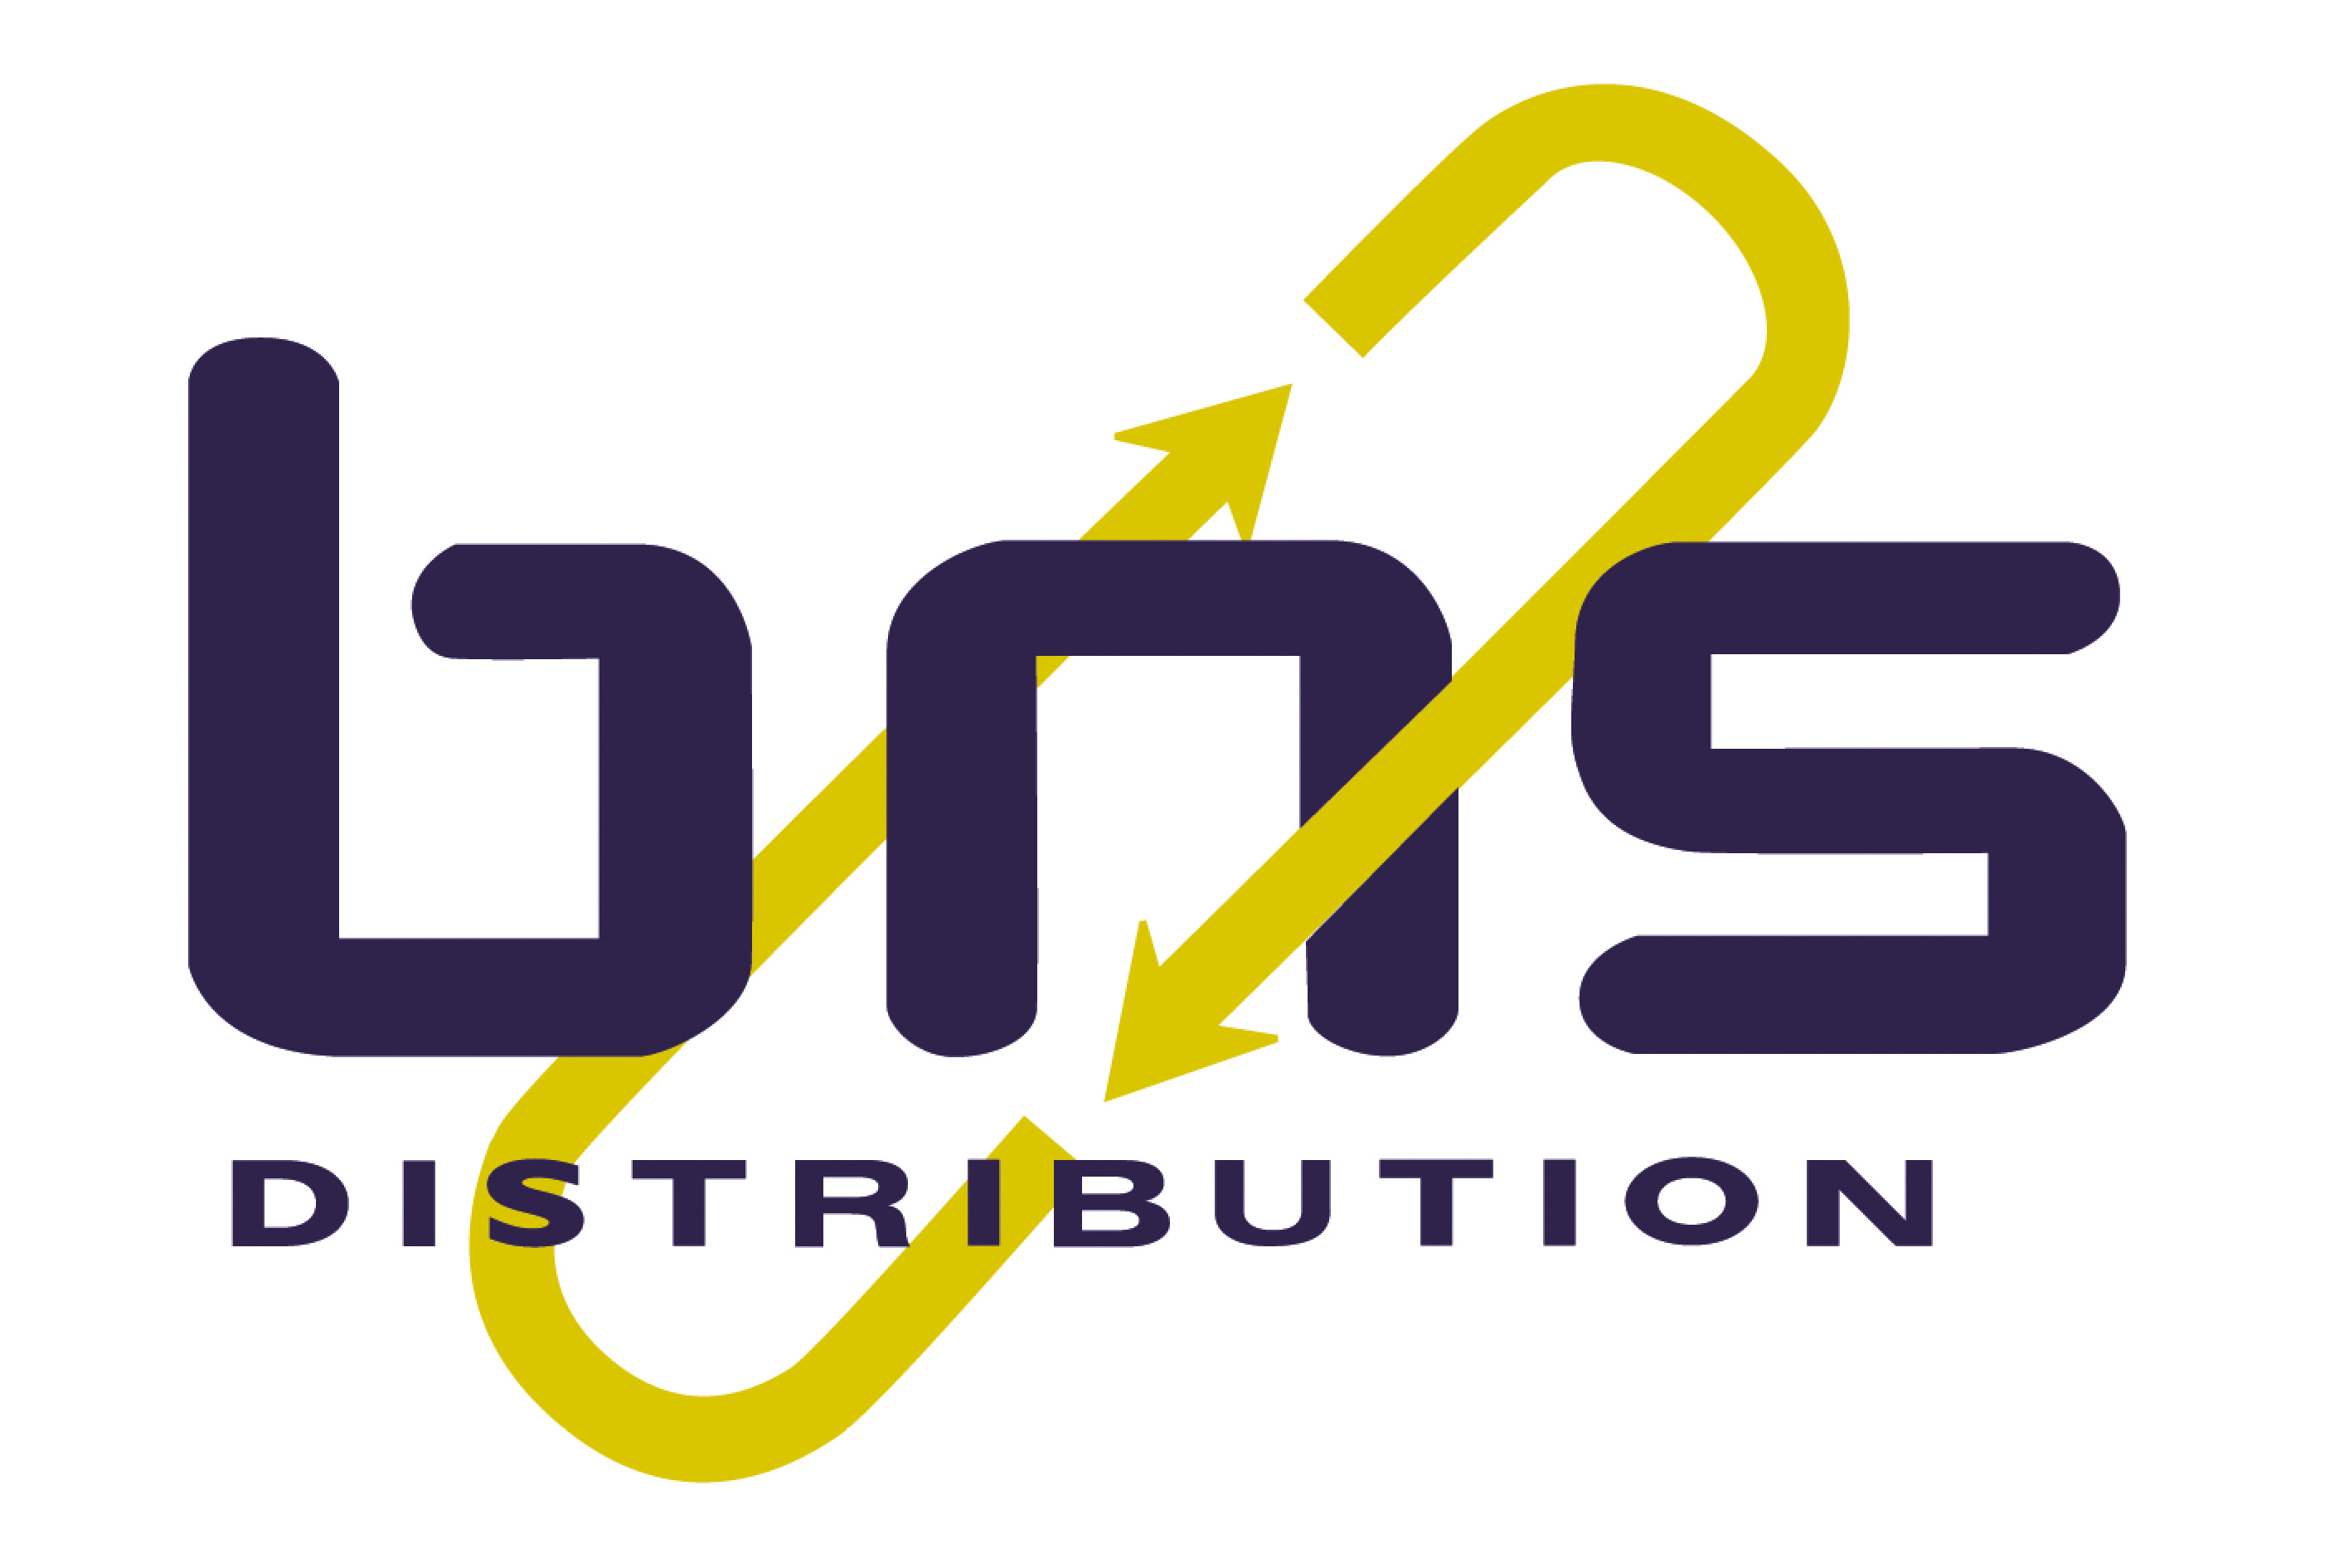 Bns distribution logo jpeg